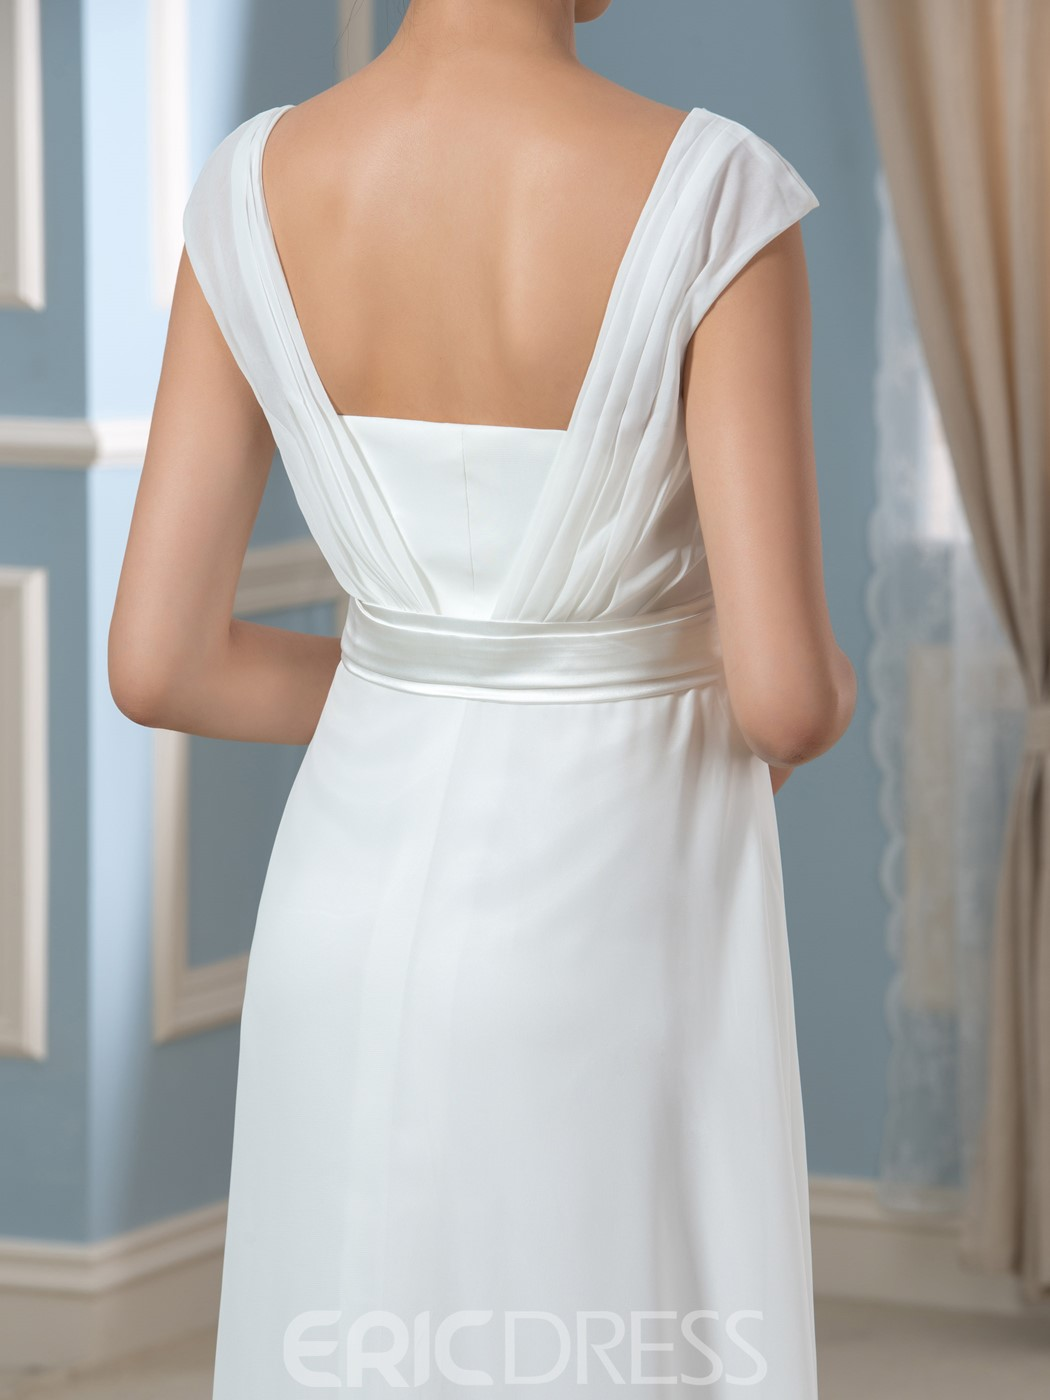 Ericdress Simple Square A Line Empire Maternity Wedding Dress